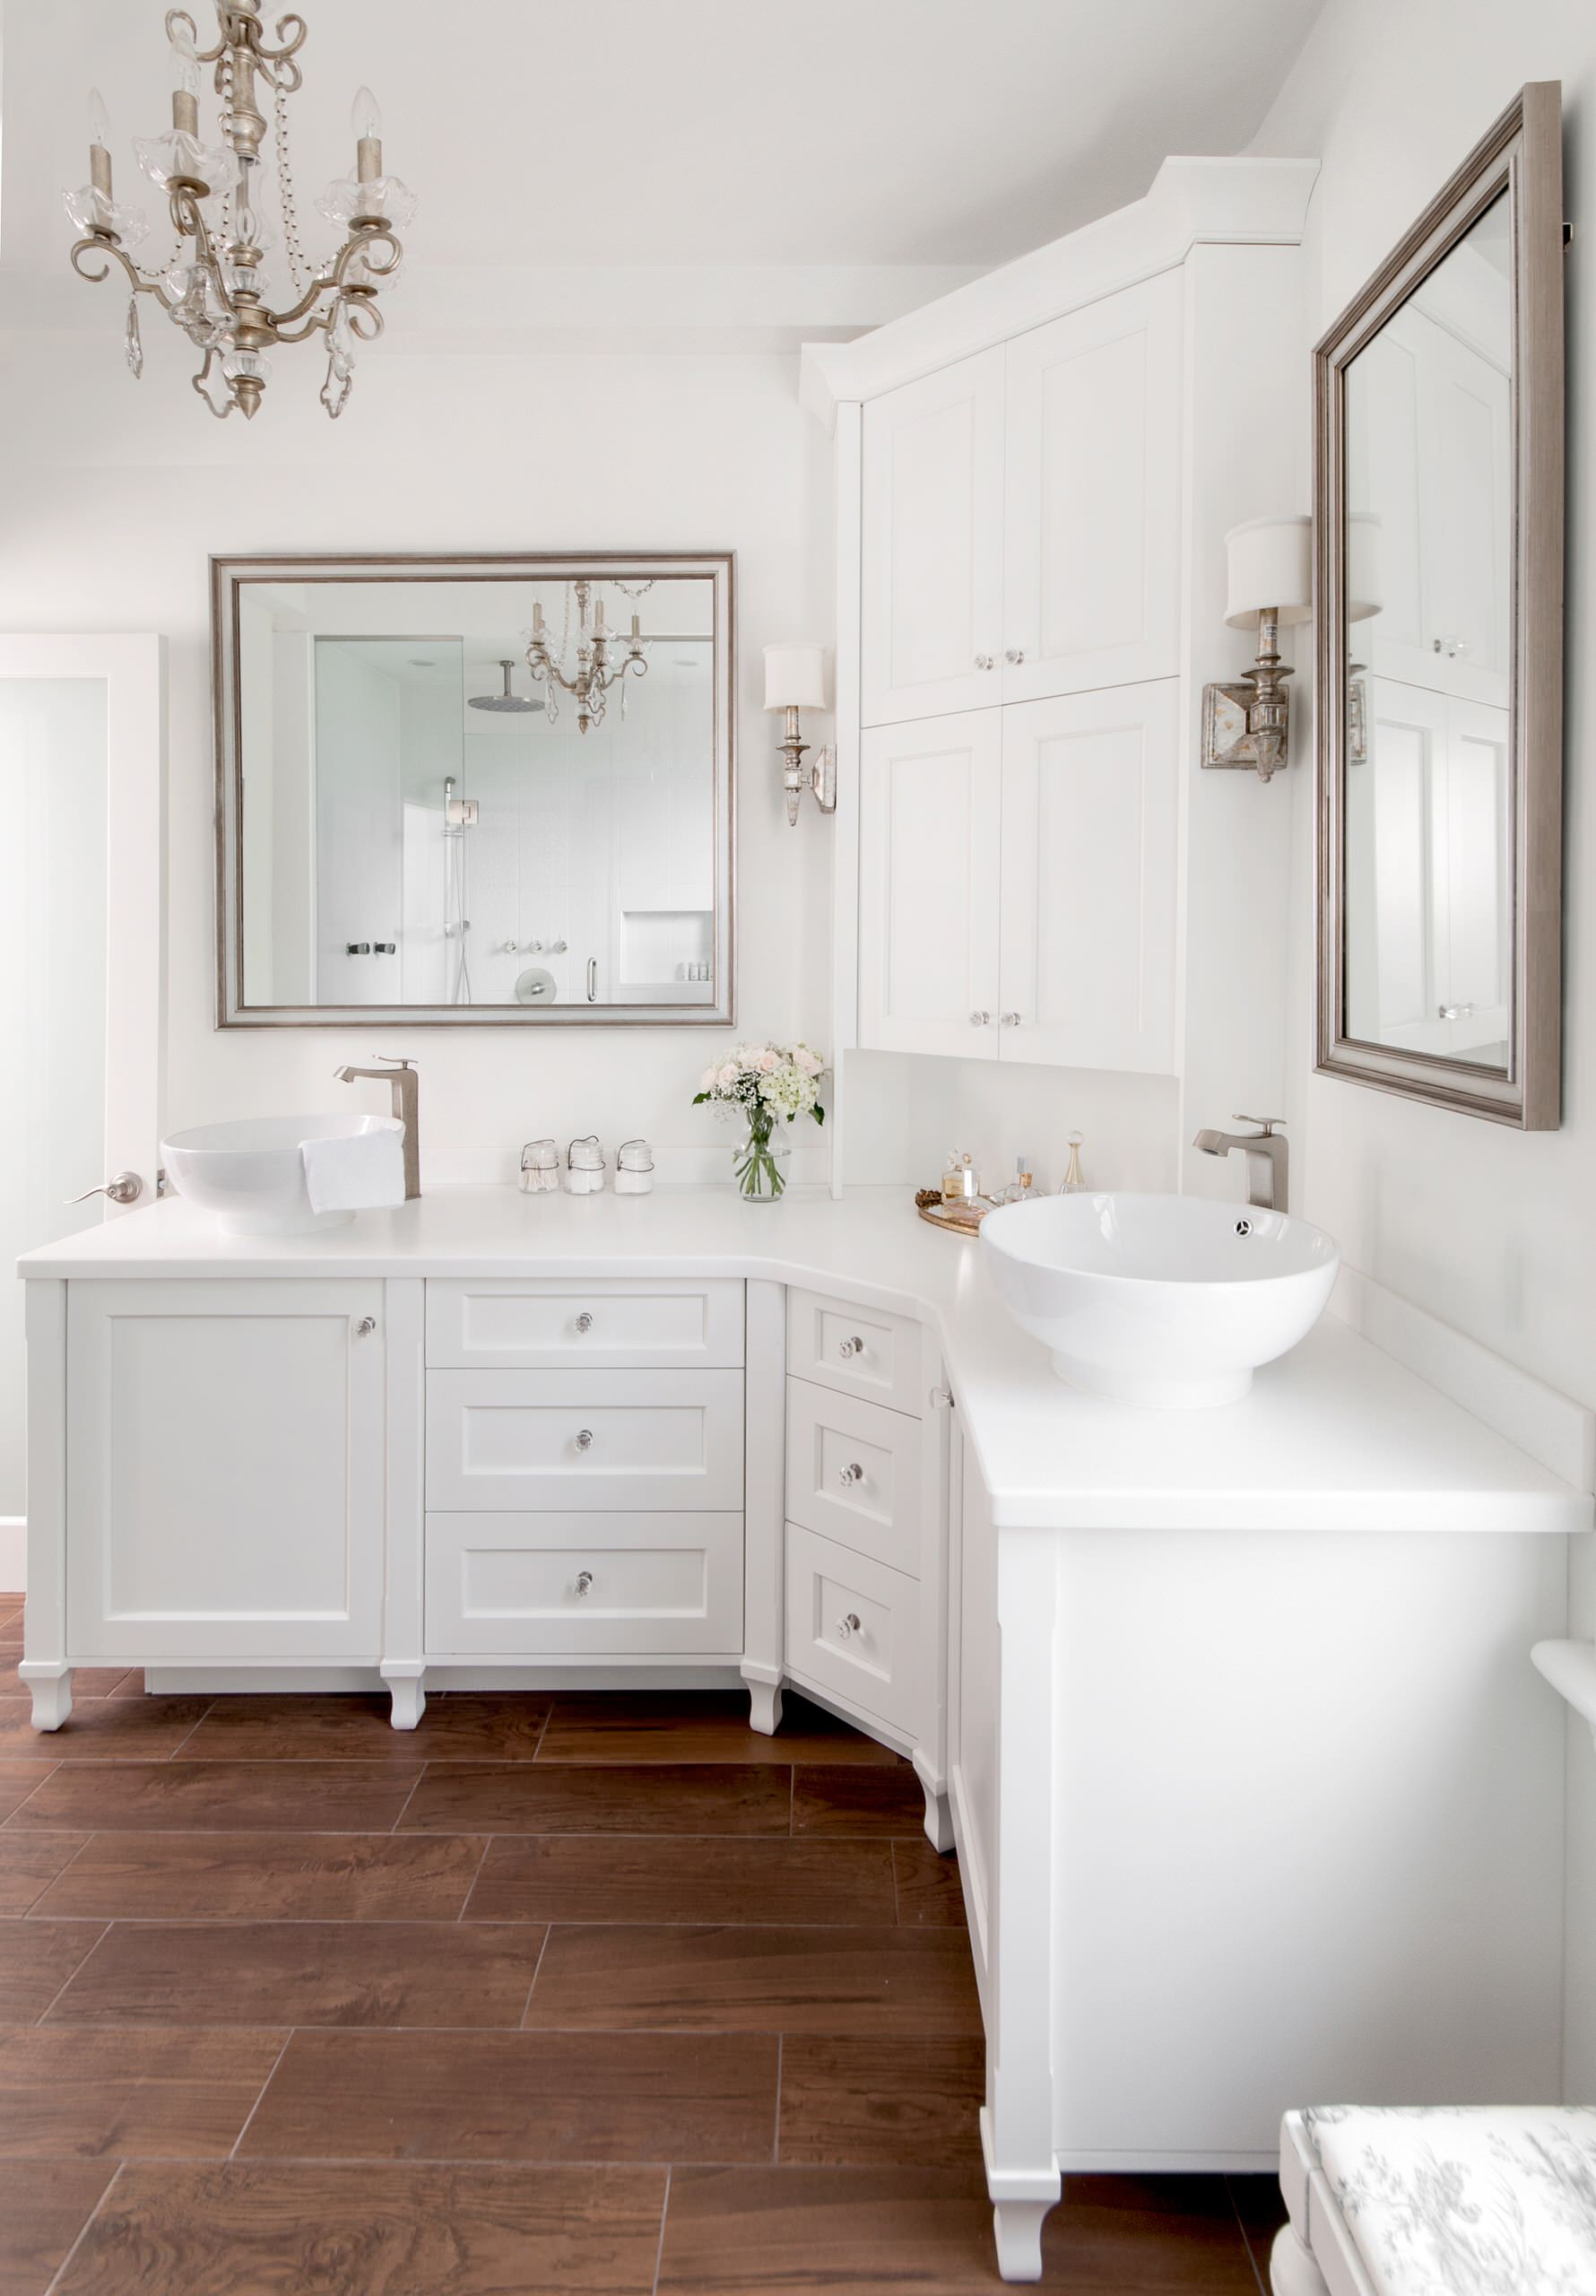 75 Beautiful Wood Look Tile Bathroom Pictures Ideas April 2021 Houzz